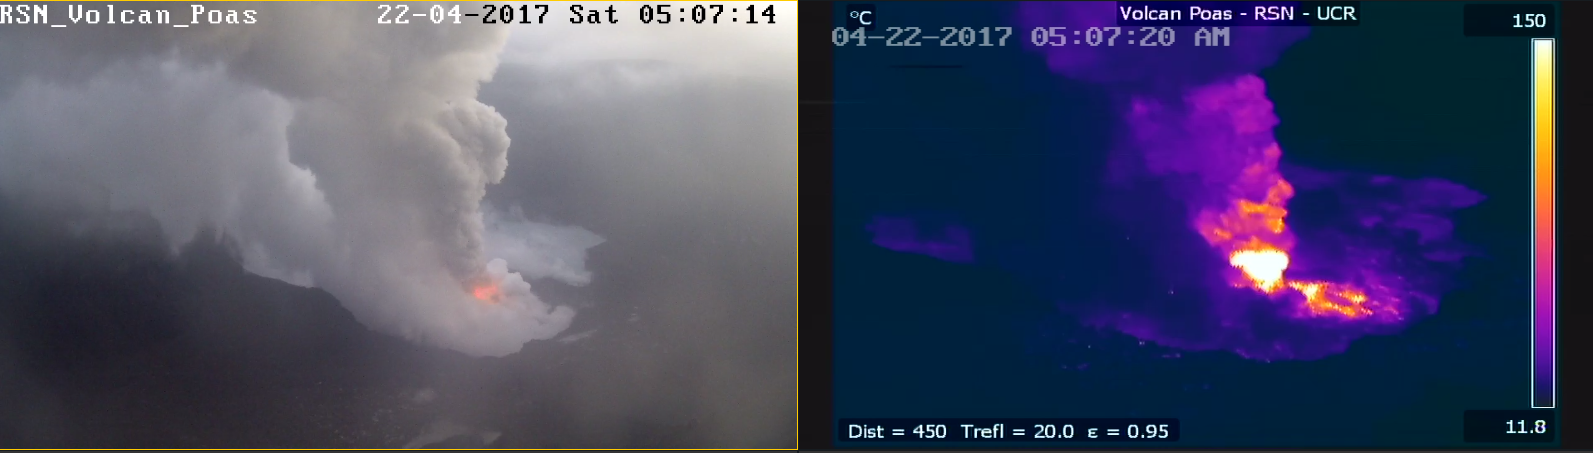 Poas - 22.04.2017 / 5h07 loc. - the amplification provided by the images of the webcam allows to see the point of emission of the eruptions - RSN